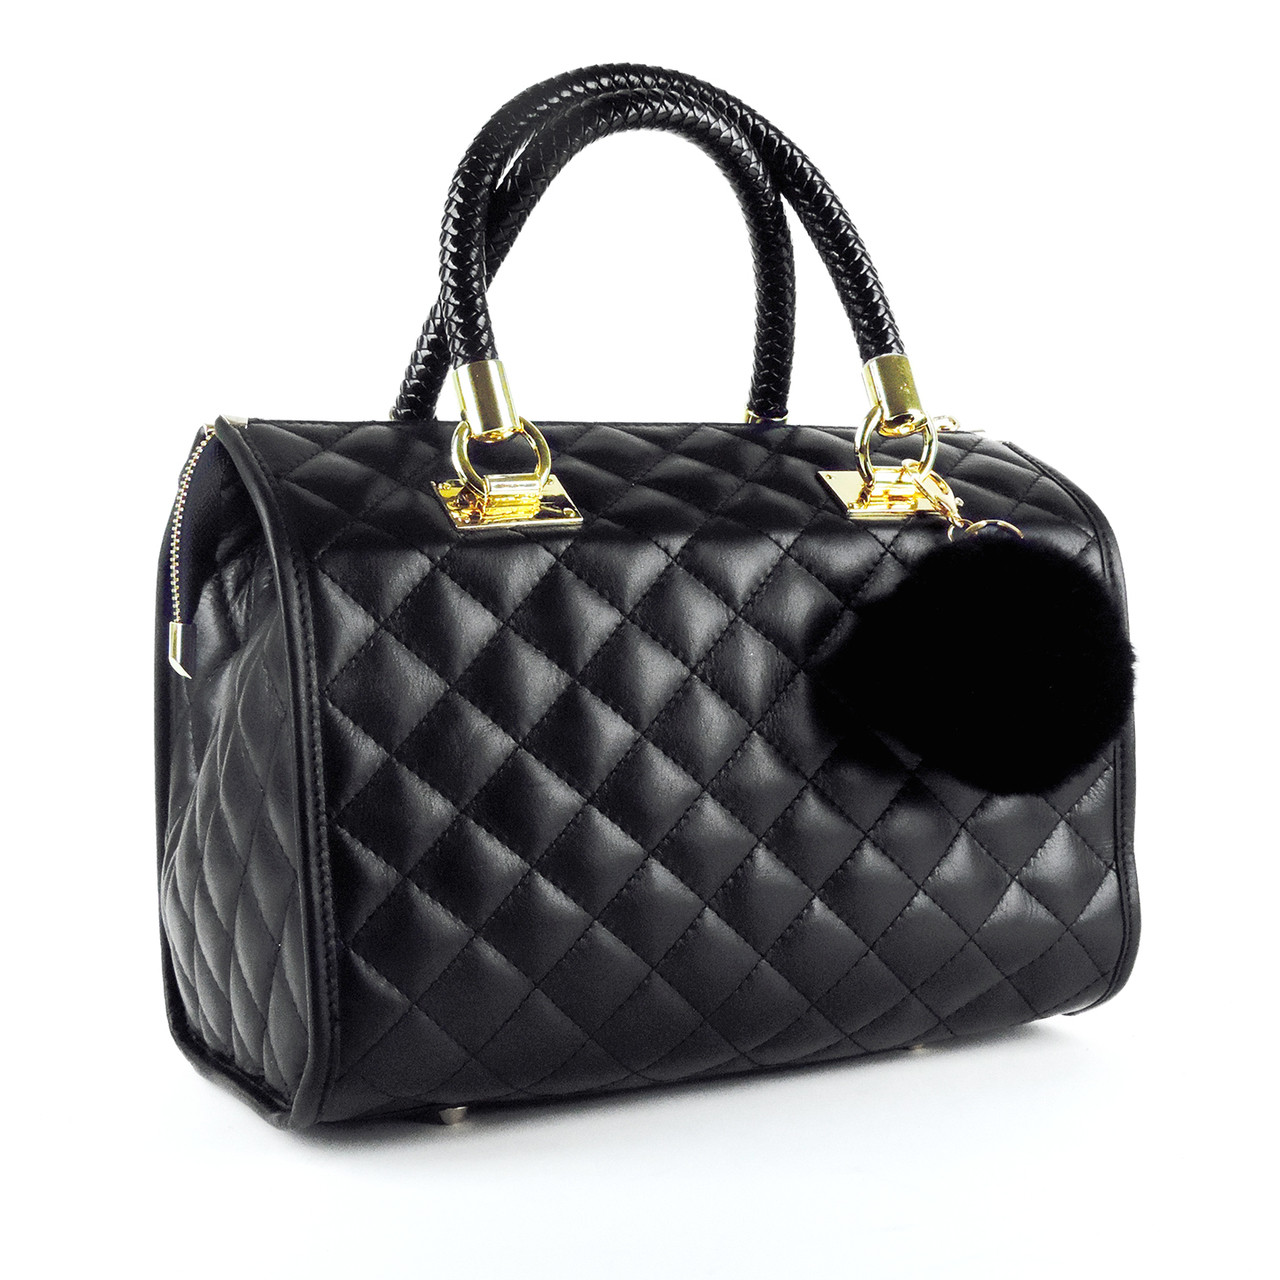 pouch shoulder bag quilt from bags leather lady in messenger s quilted handbags women chain crossbody brand female luggage item hand